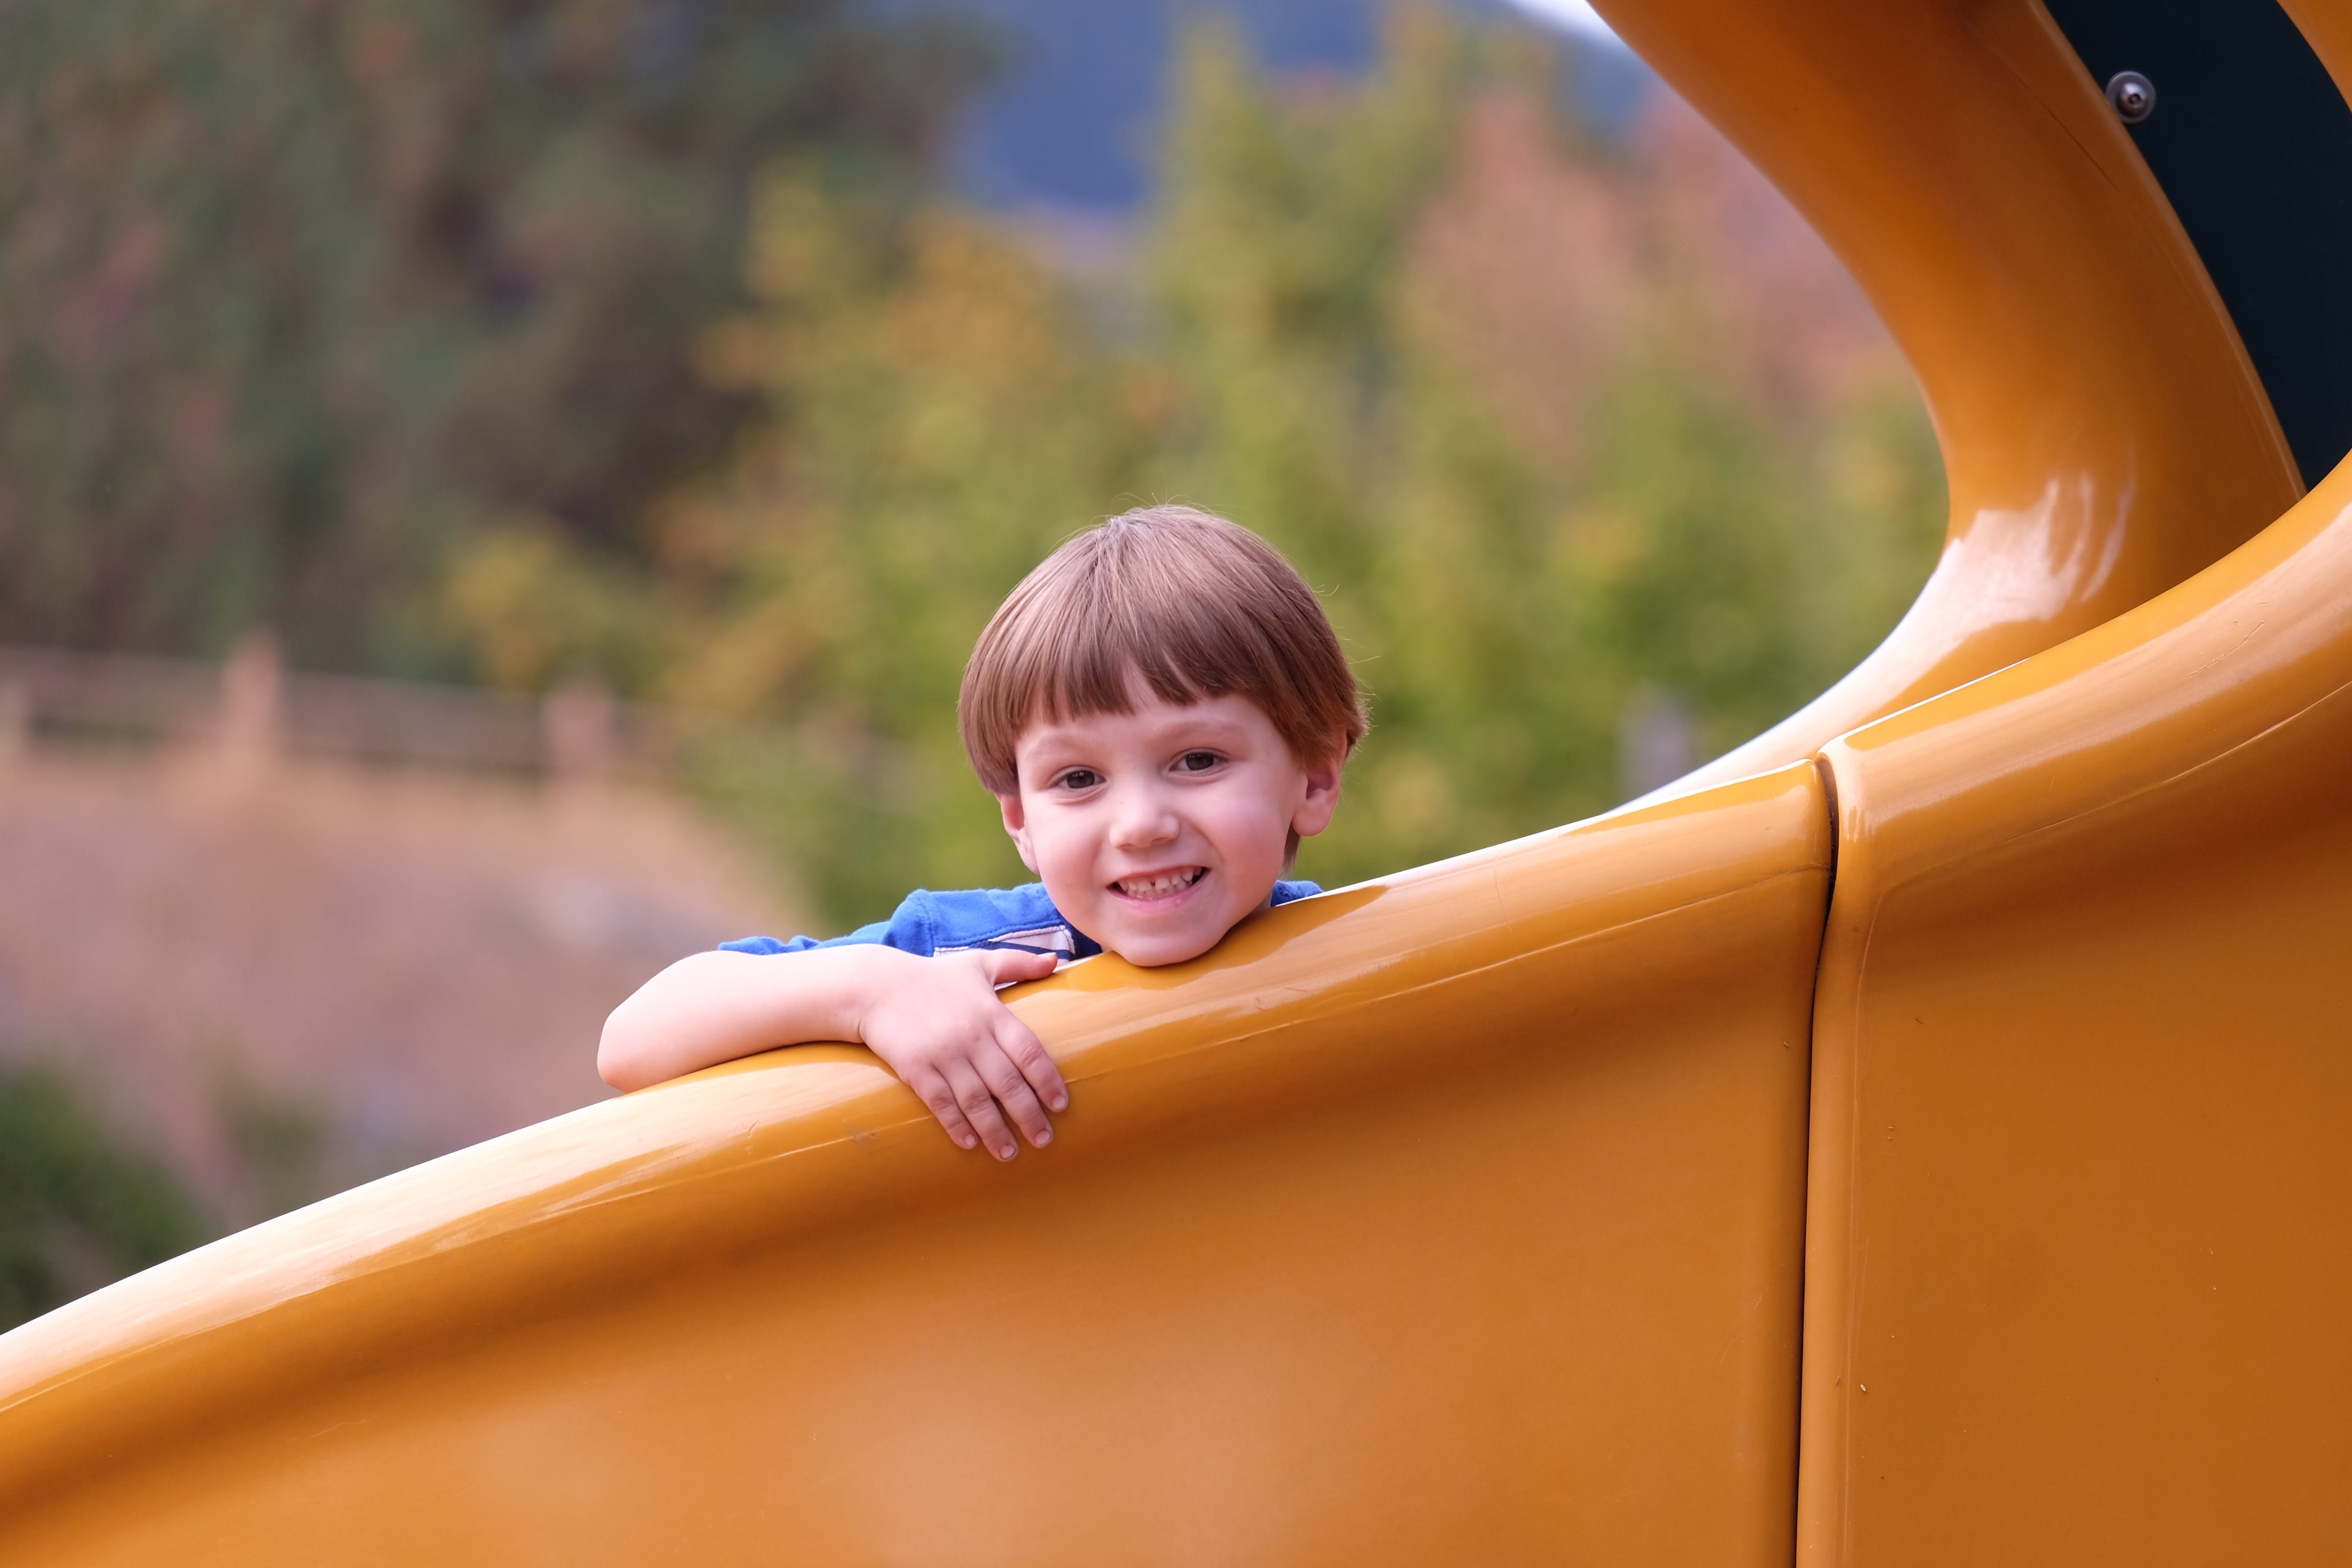 CHild looking over the edge of a slide at the camera